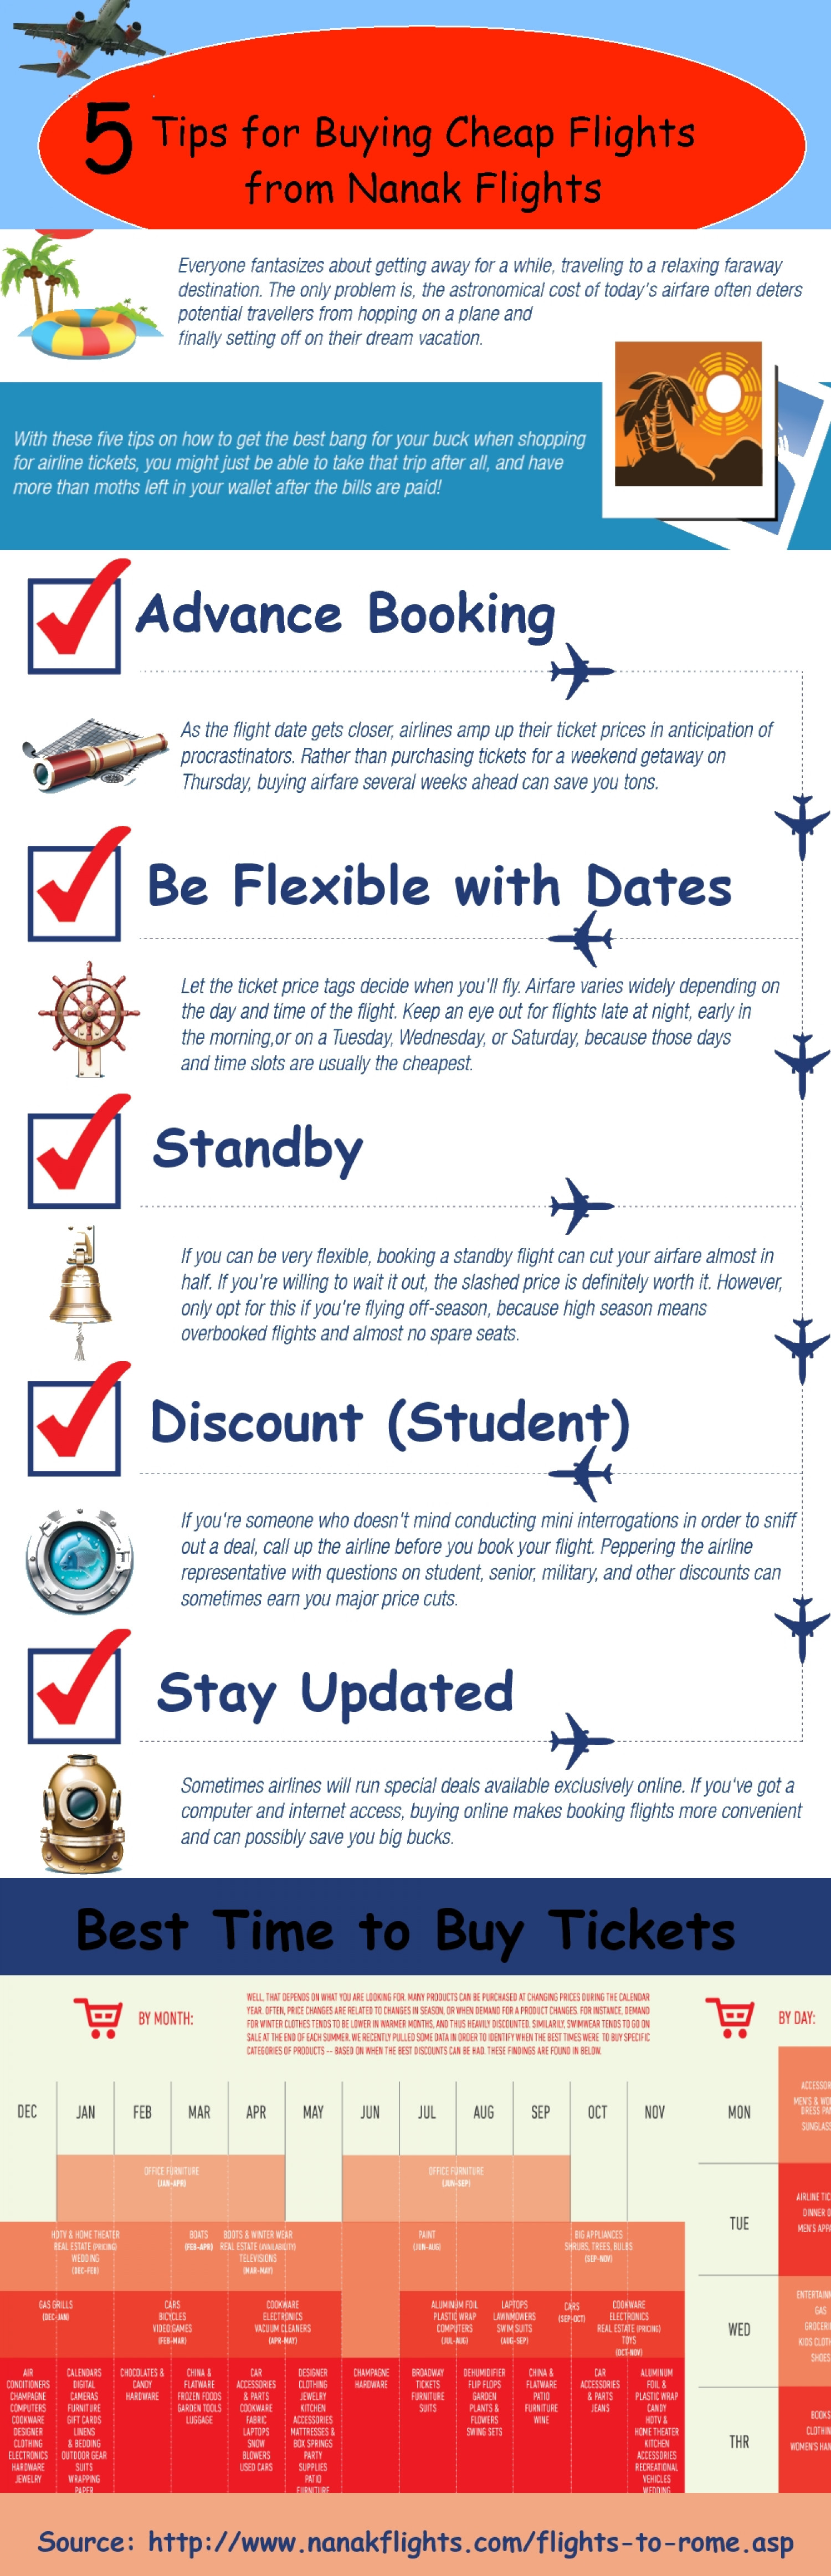 5 Tips for Buying Cheap Flights From Nanak Flights Infographic